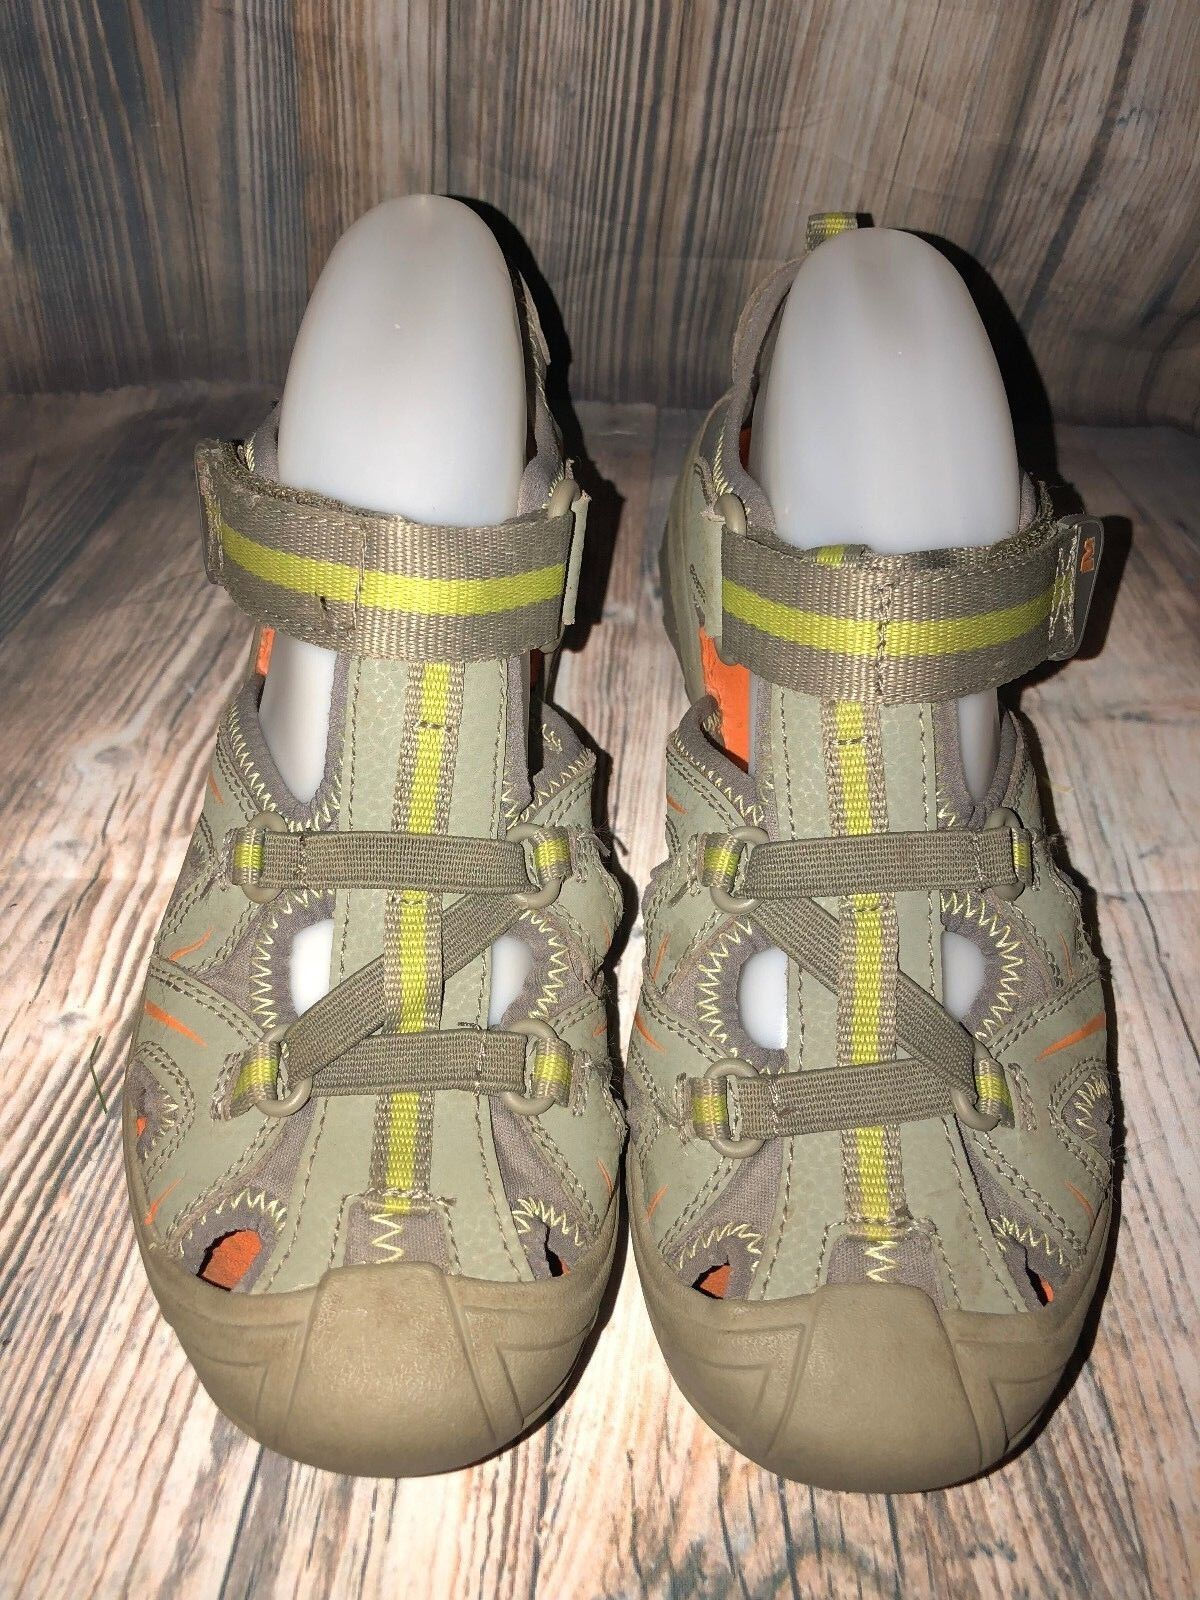 MERRELL WOMEN'S HYDRO SIZE GREEN LEATHER SANDAL SHOES SIZE HYDRO 5 / 36 85286a